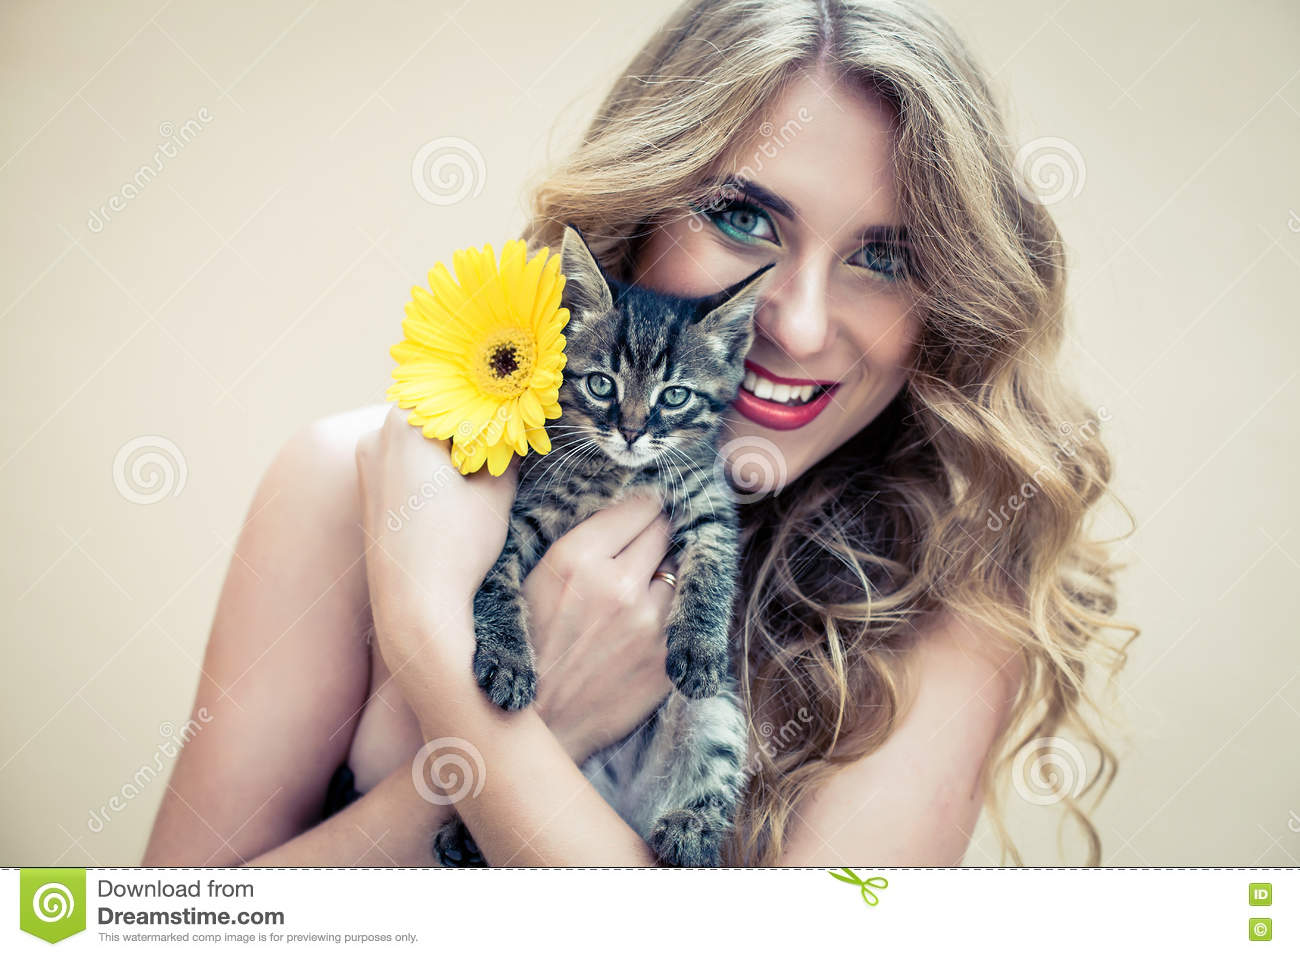 Naked girls holding cats 136 Nude Cat Girl Photos Free Royalty Free Stock Photos From Dreamstime